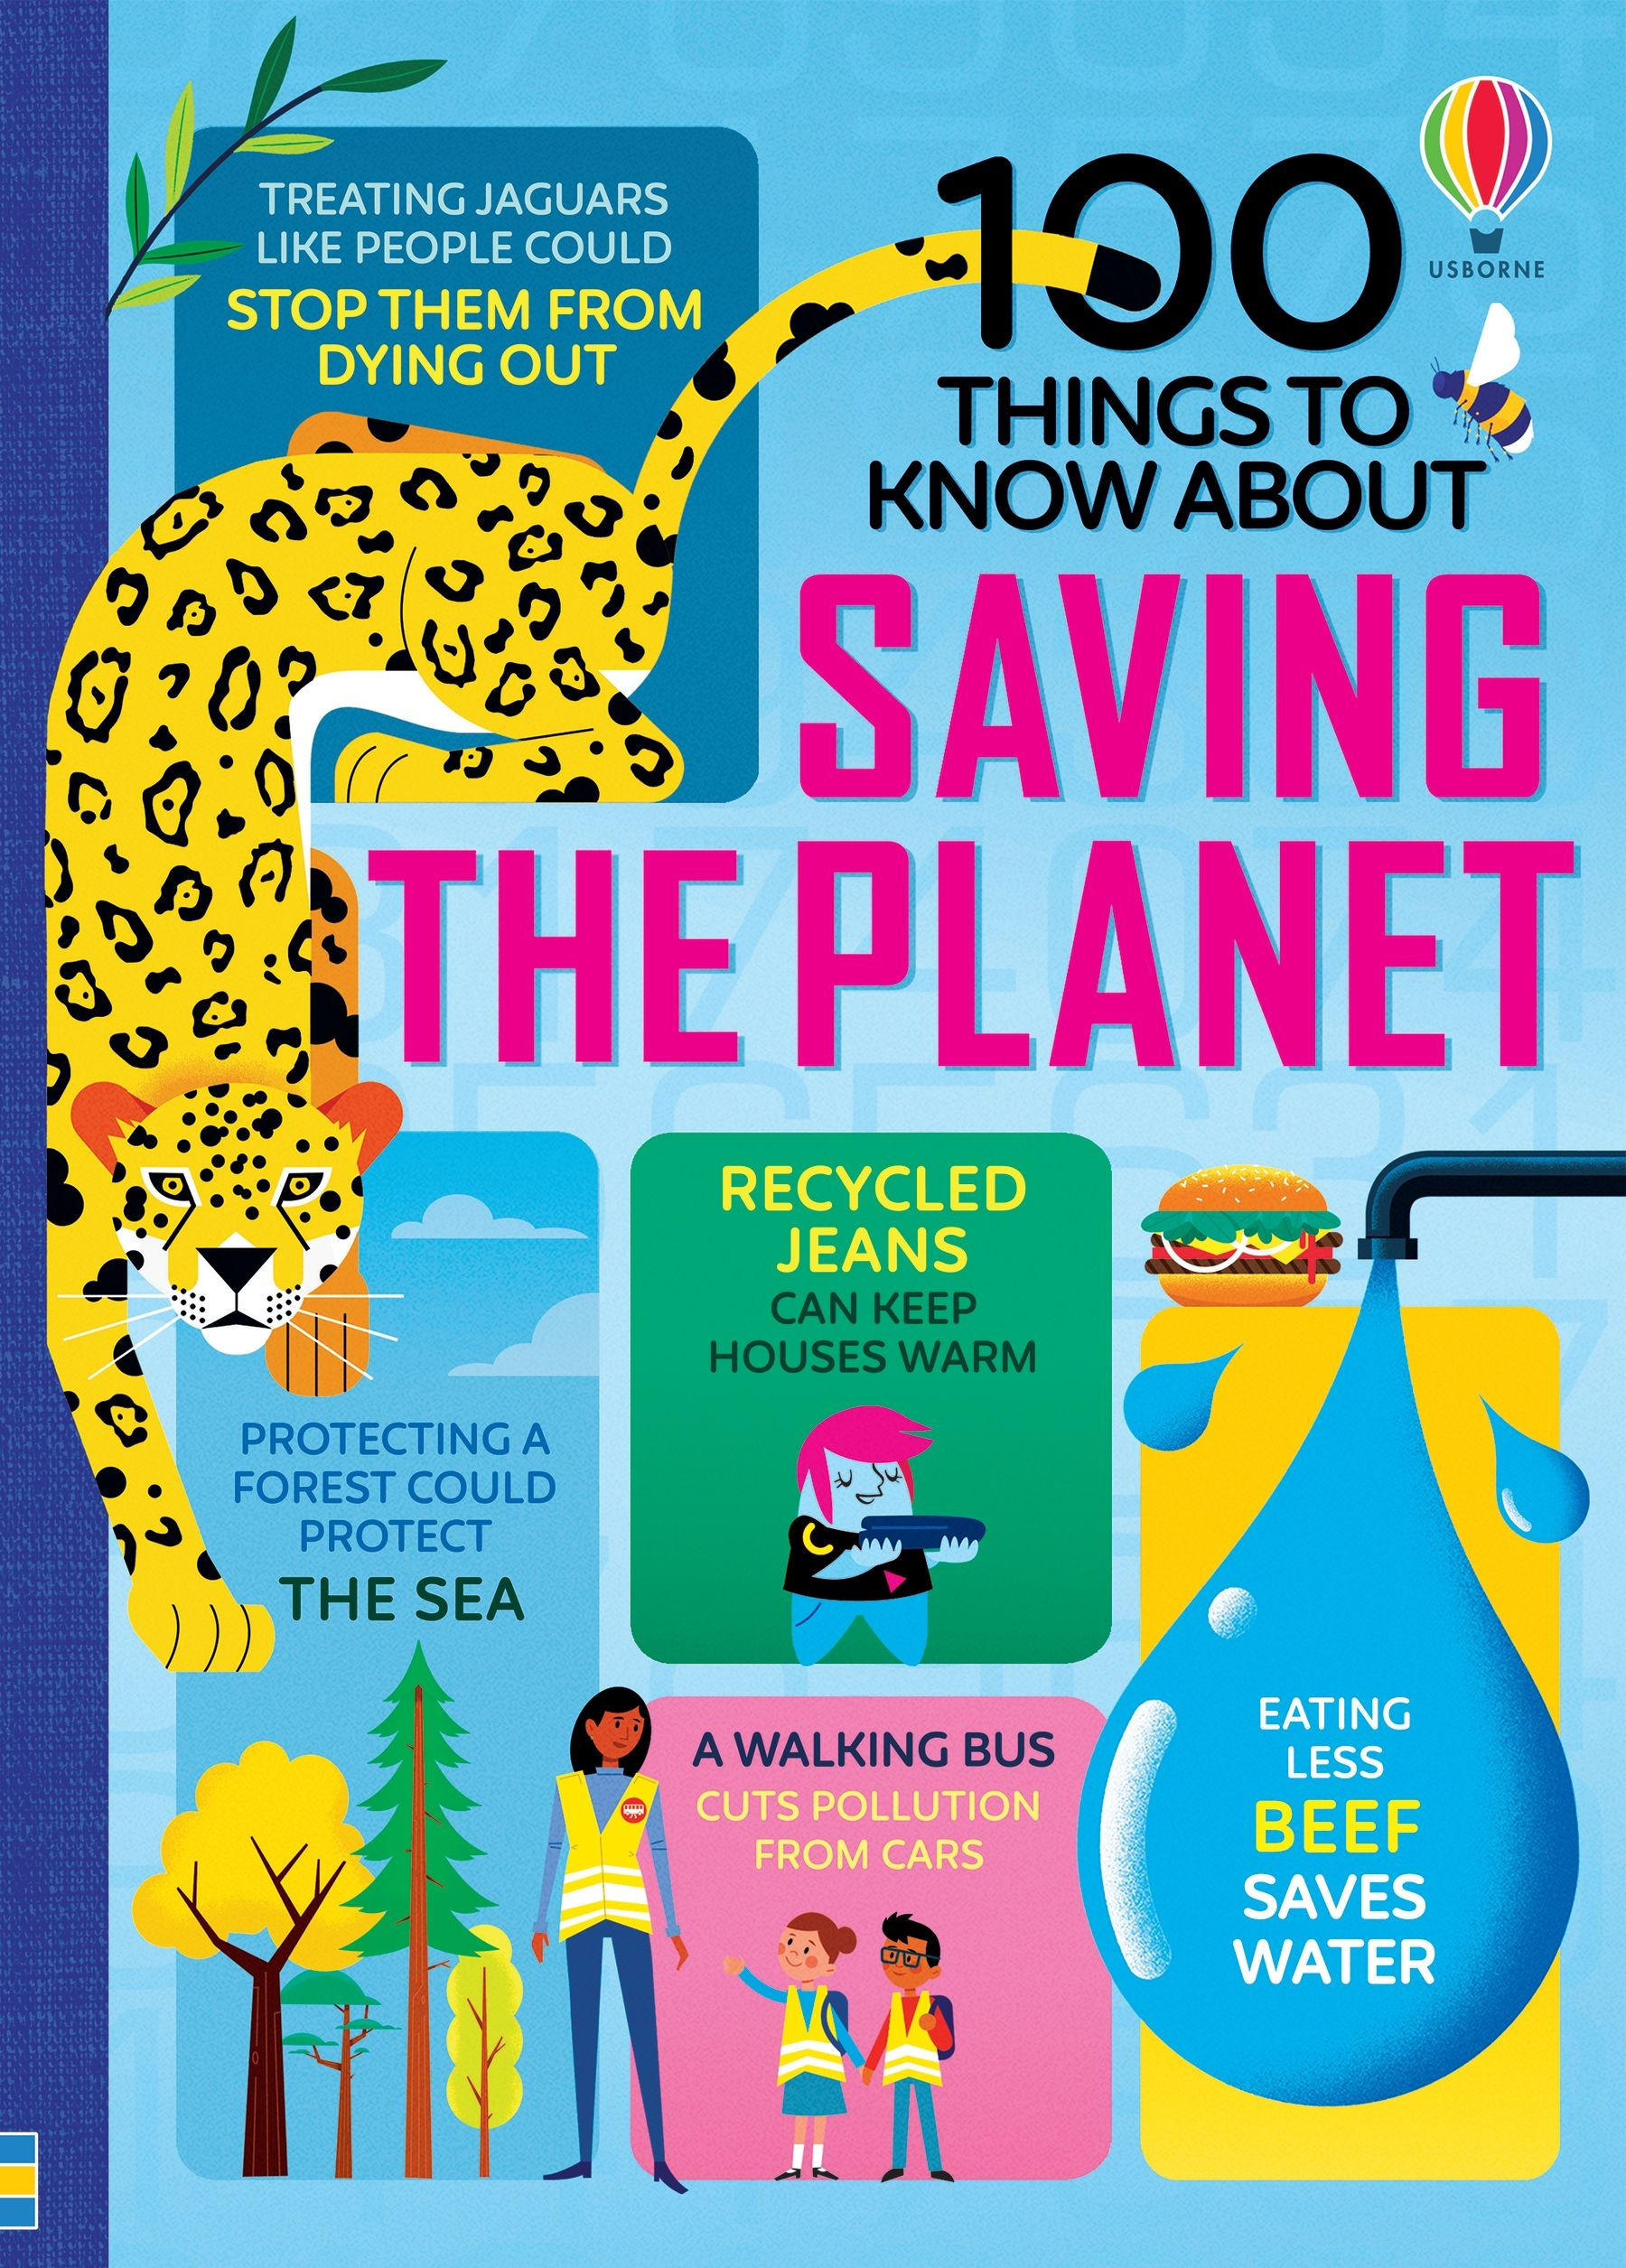 100 Things to Know About Saving the Planet Image